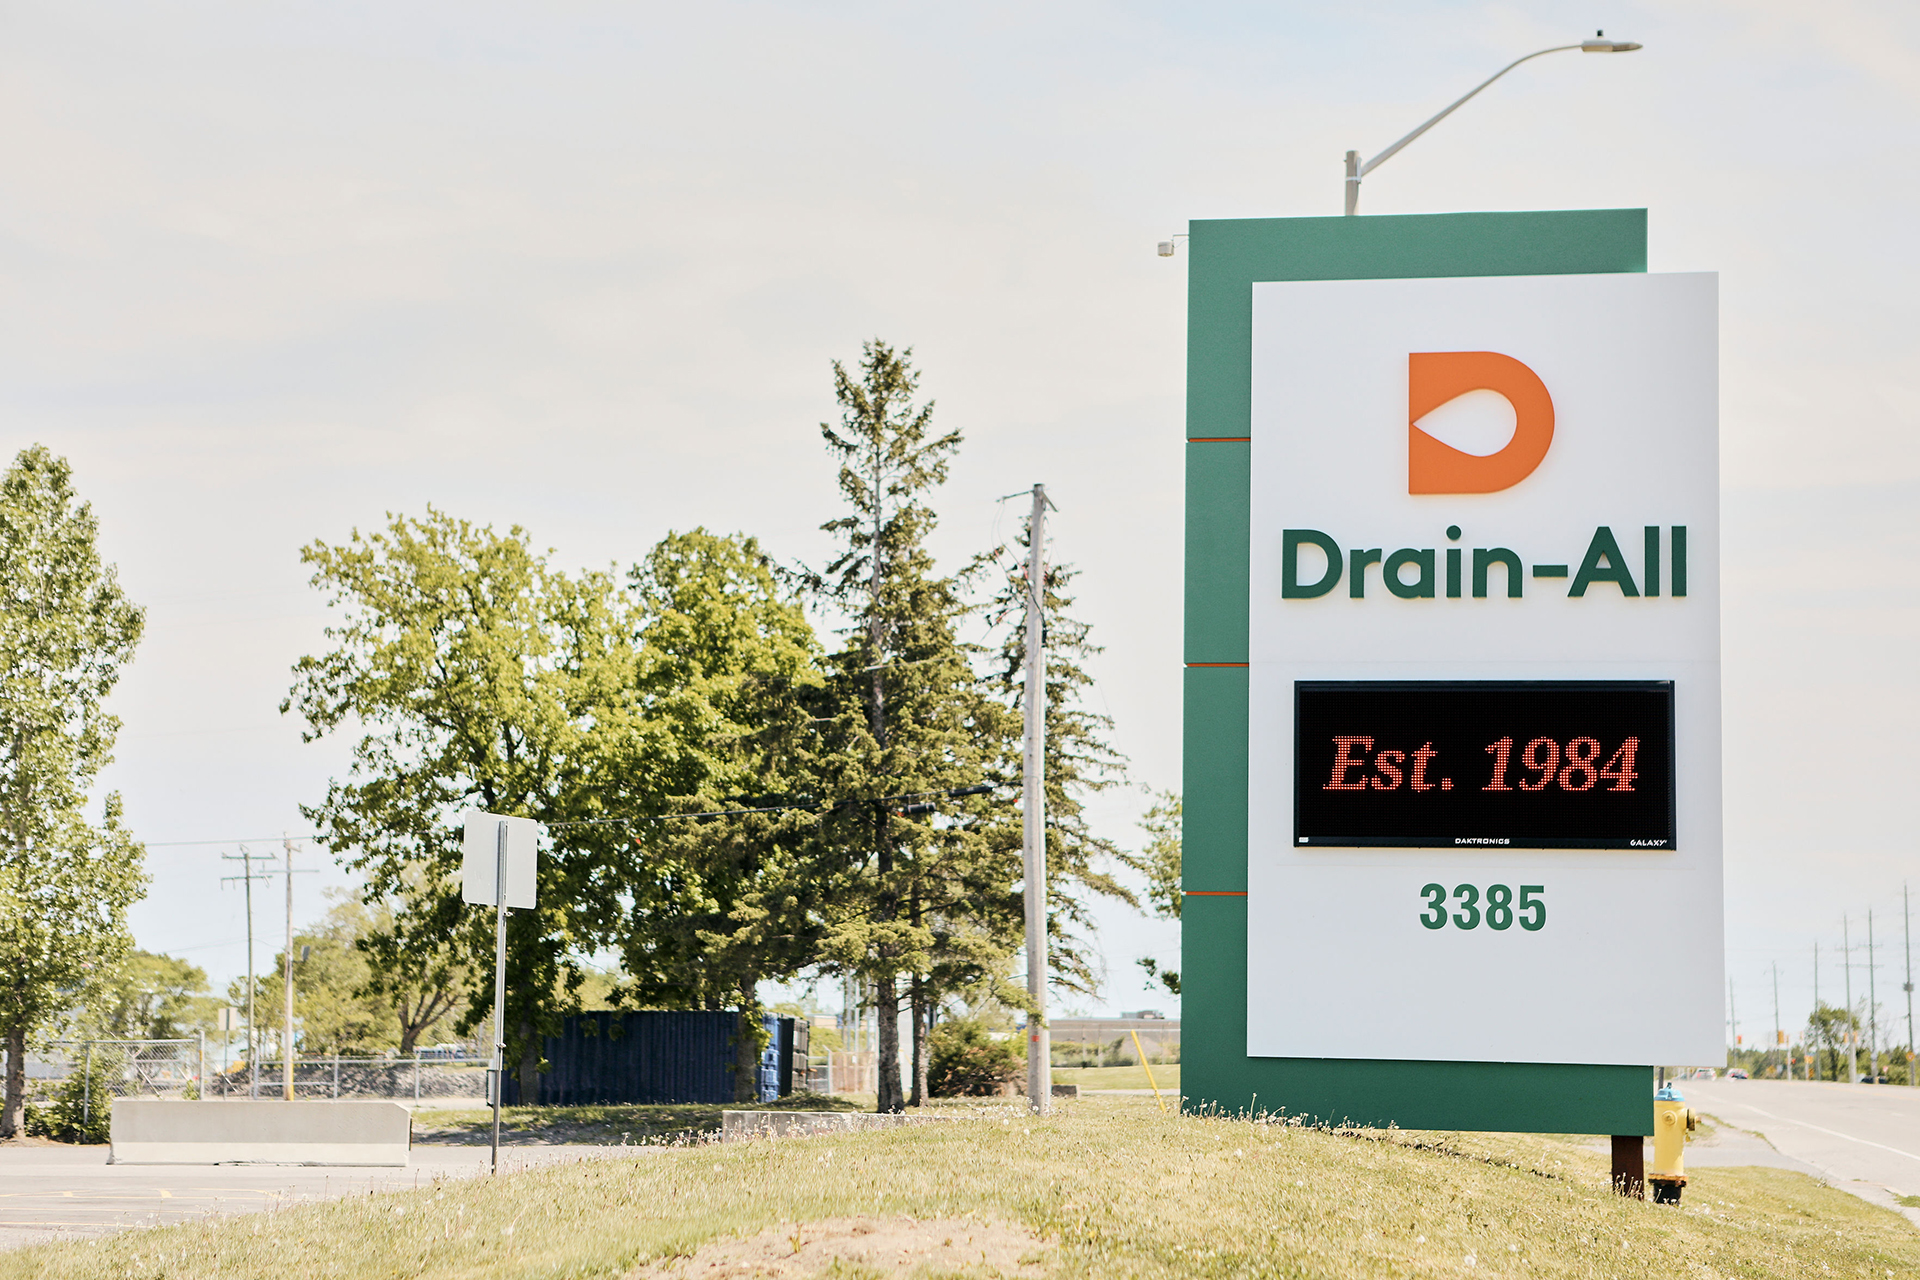 Drain-All - Road Sign